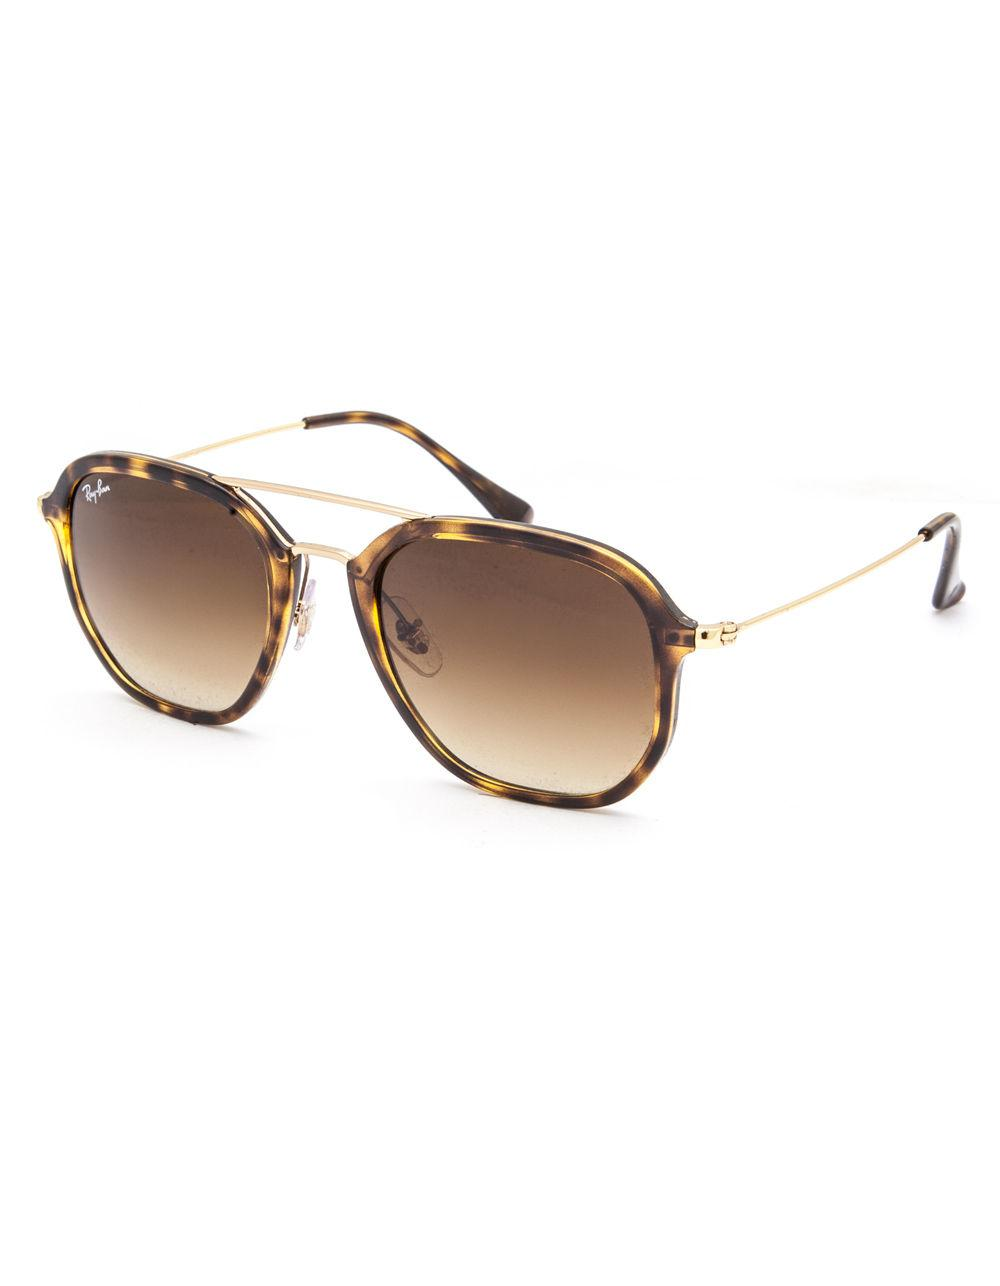 c072c84c1a Lyst - Ray-Ban Rb4273 Sunglasses in Brown